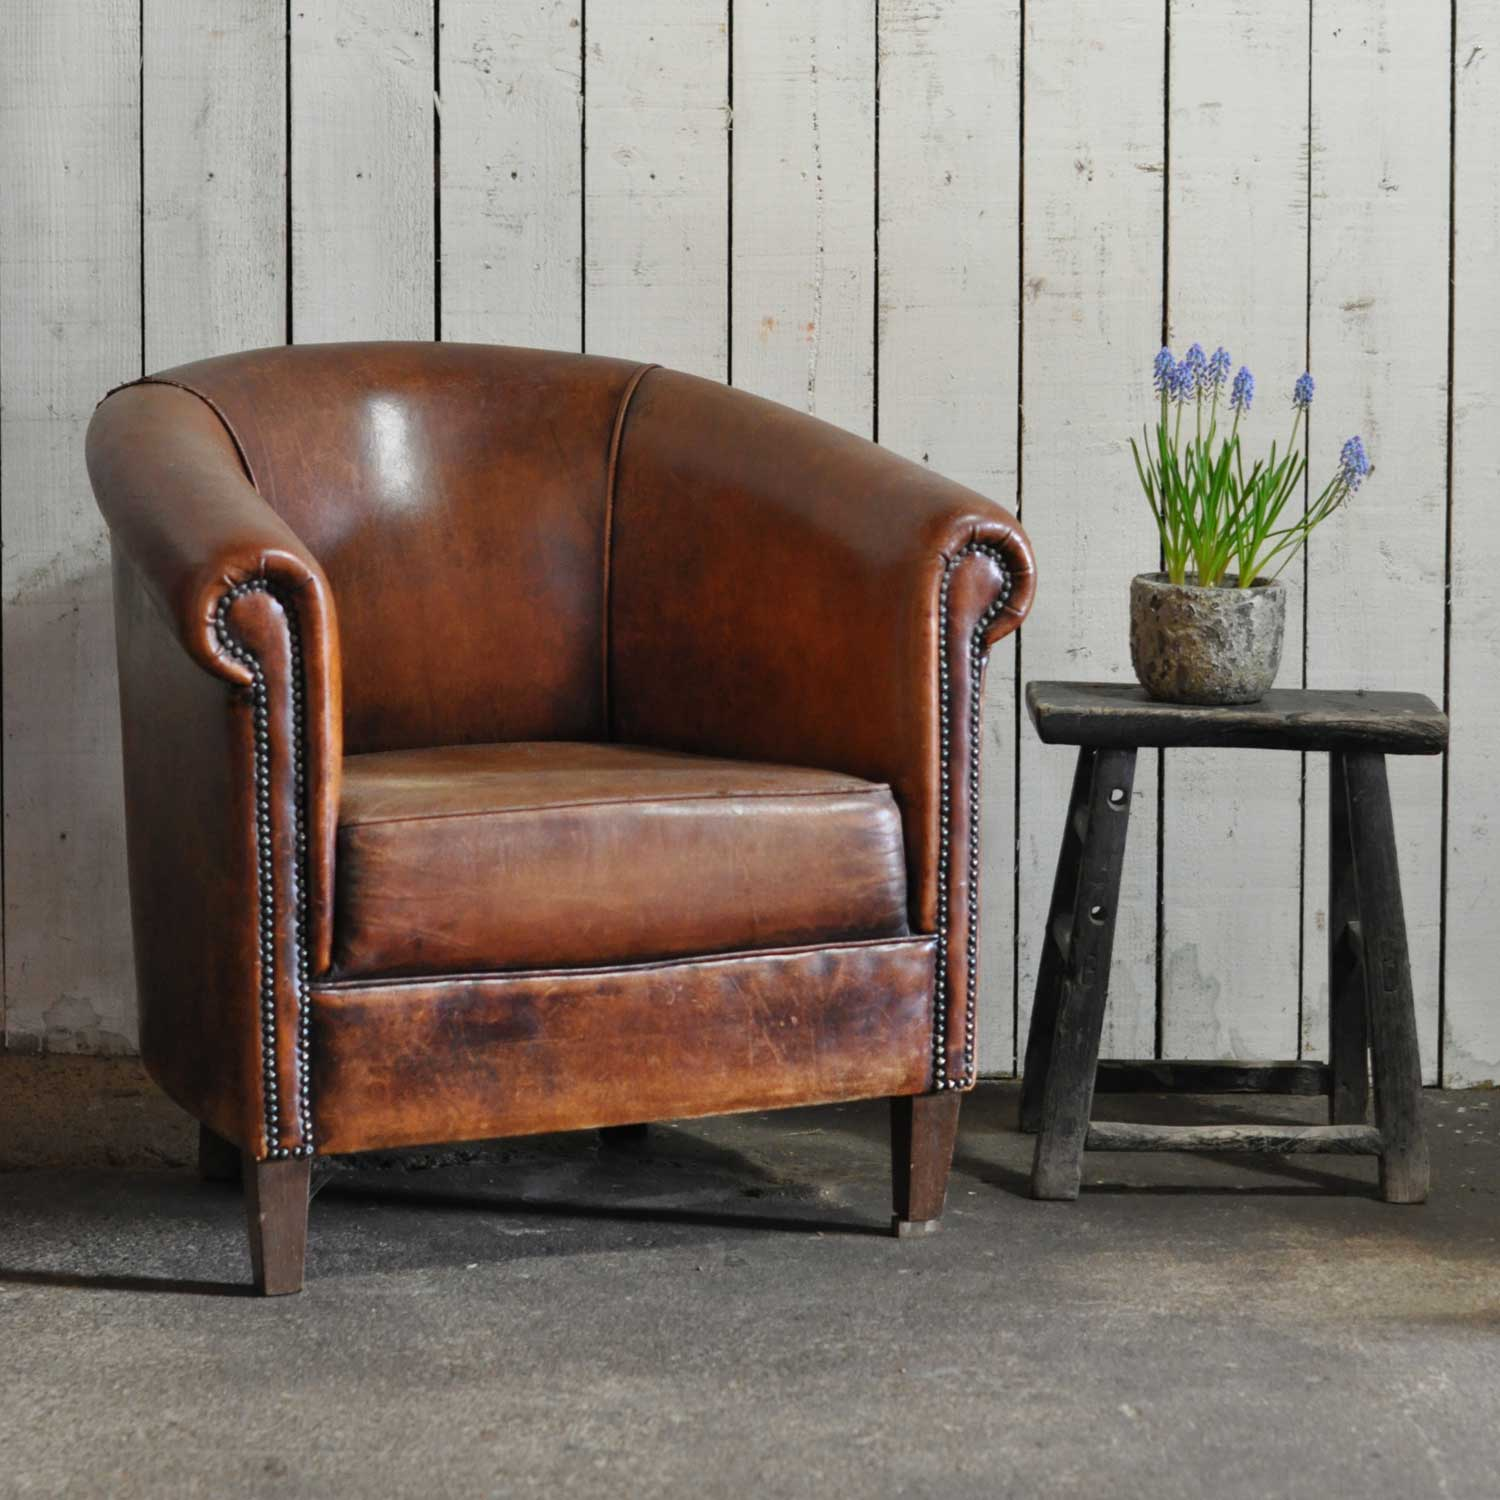 Vintage Worn French Leather Club Chair With Arms